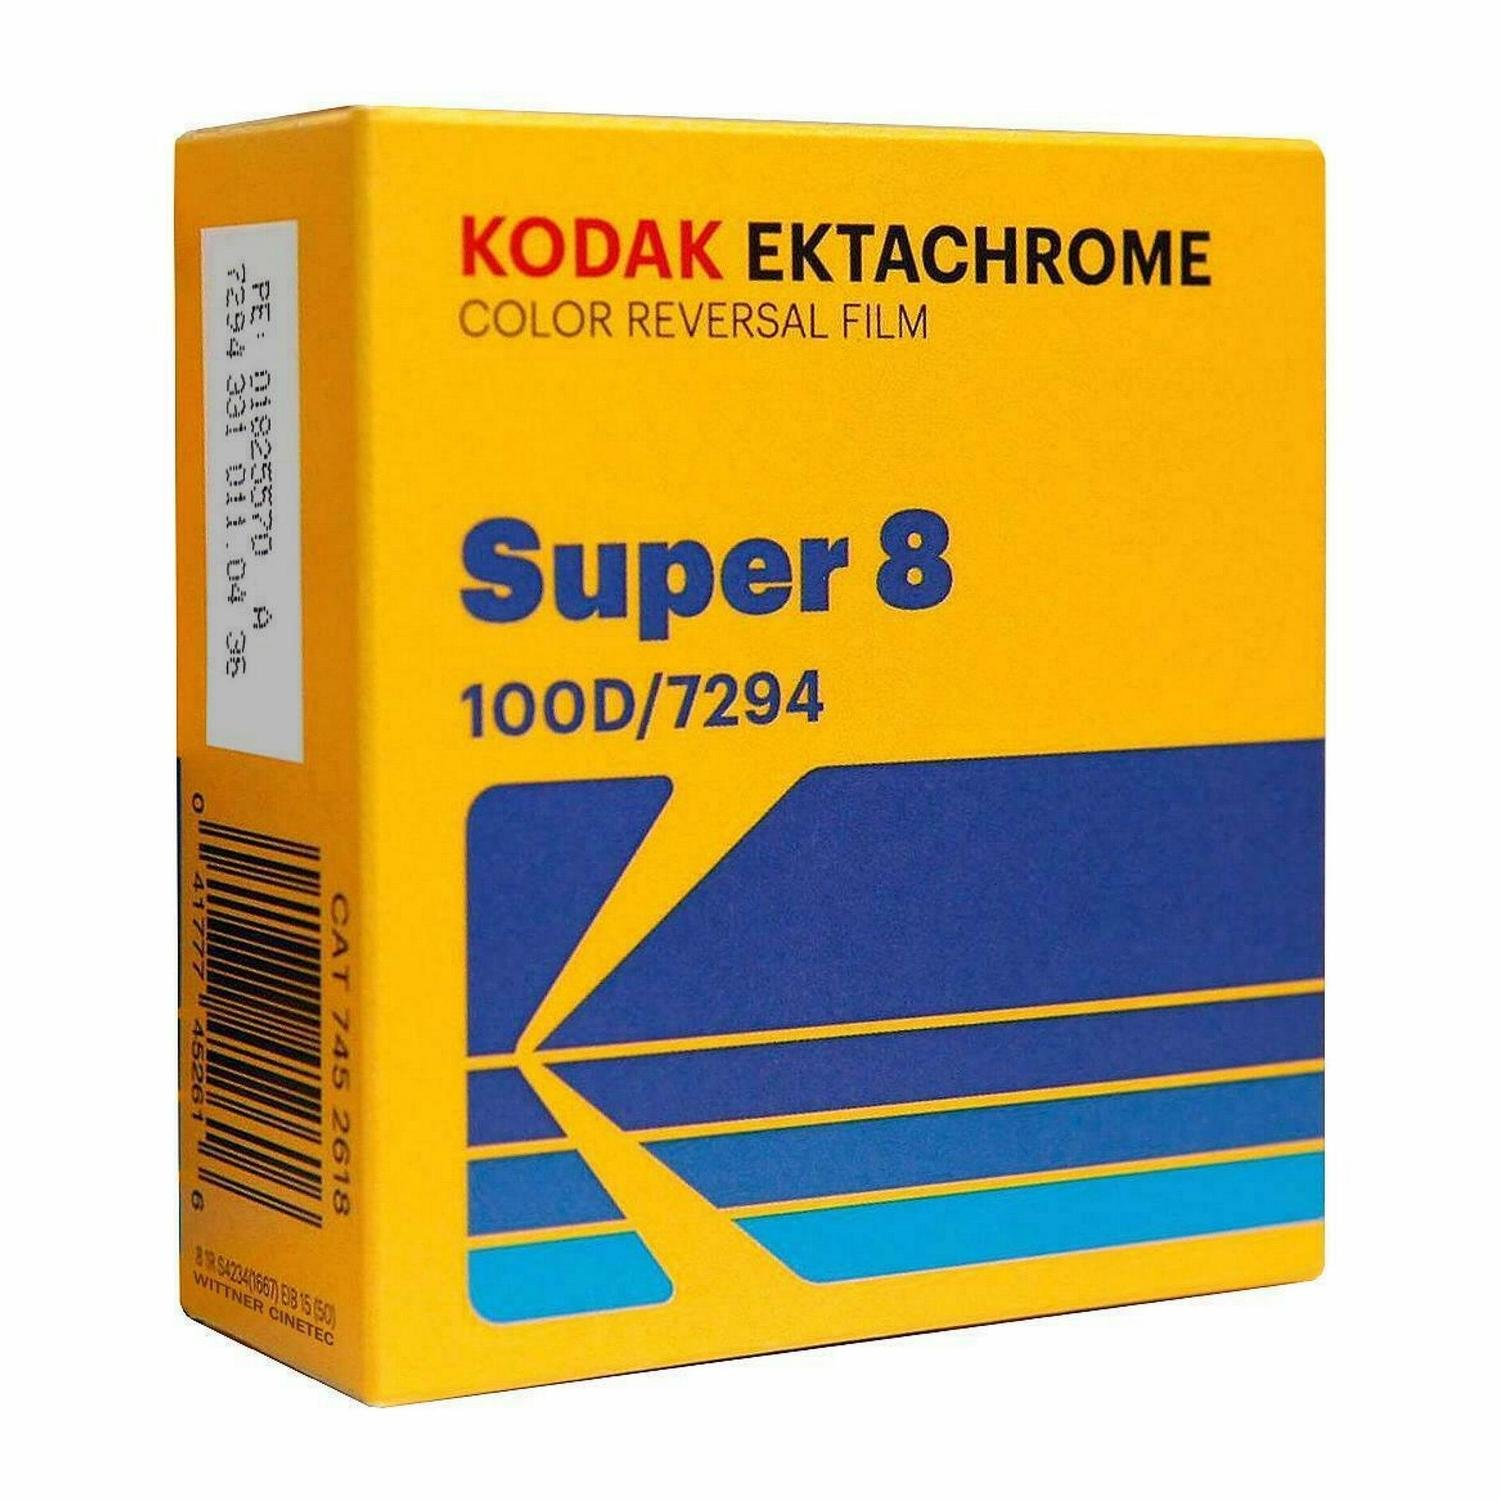 KODAK EKTACHROME 100D Color Reversal Film - Super 8